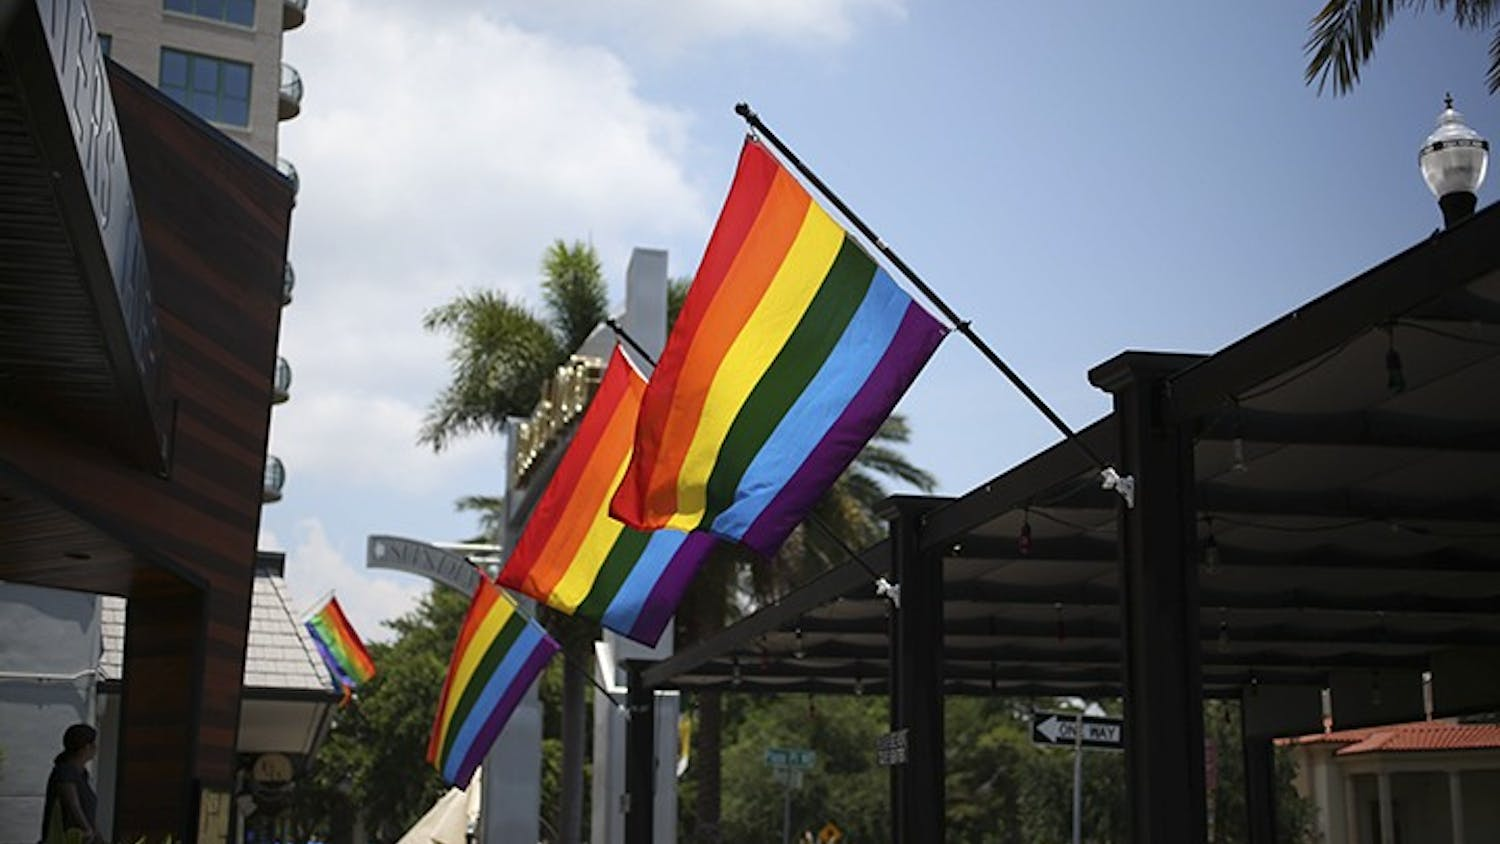 Rainbow flags fly in front of St. Petersburg businesses in preparation for the 2018 Pride parade. On Saturday, a block-long rainbow flag will be unfurled during the Come Out St. Pete Parade. Martha Asencio Rhine  |  Times